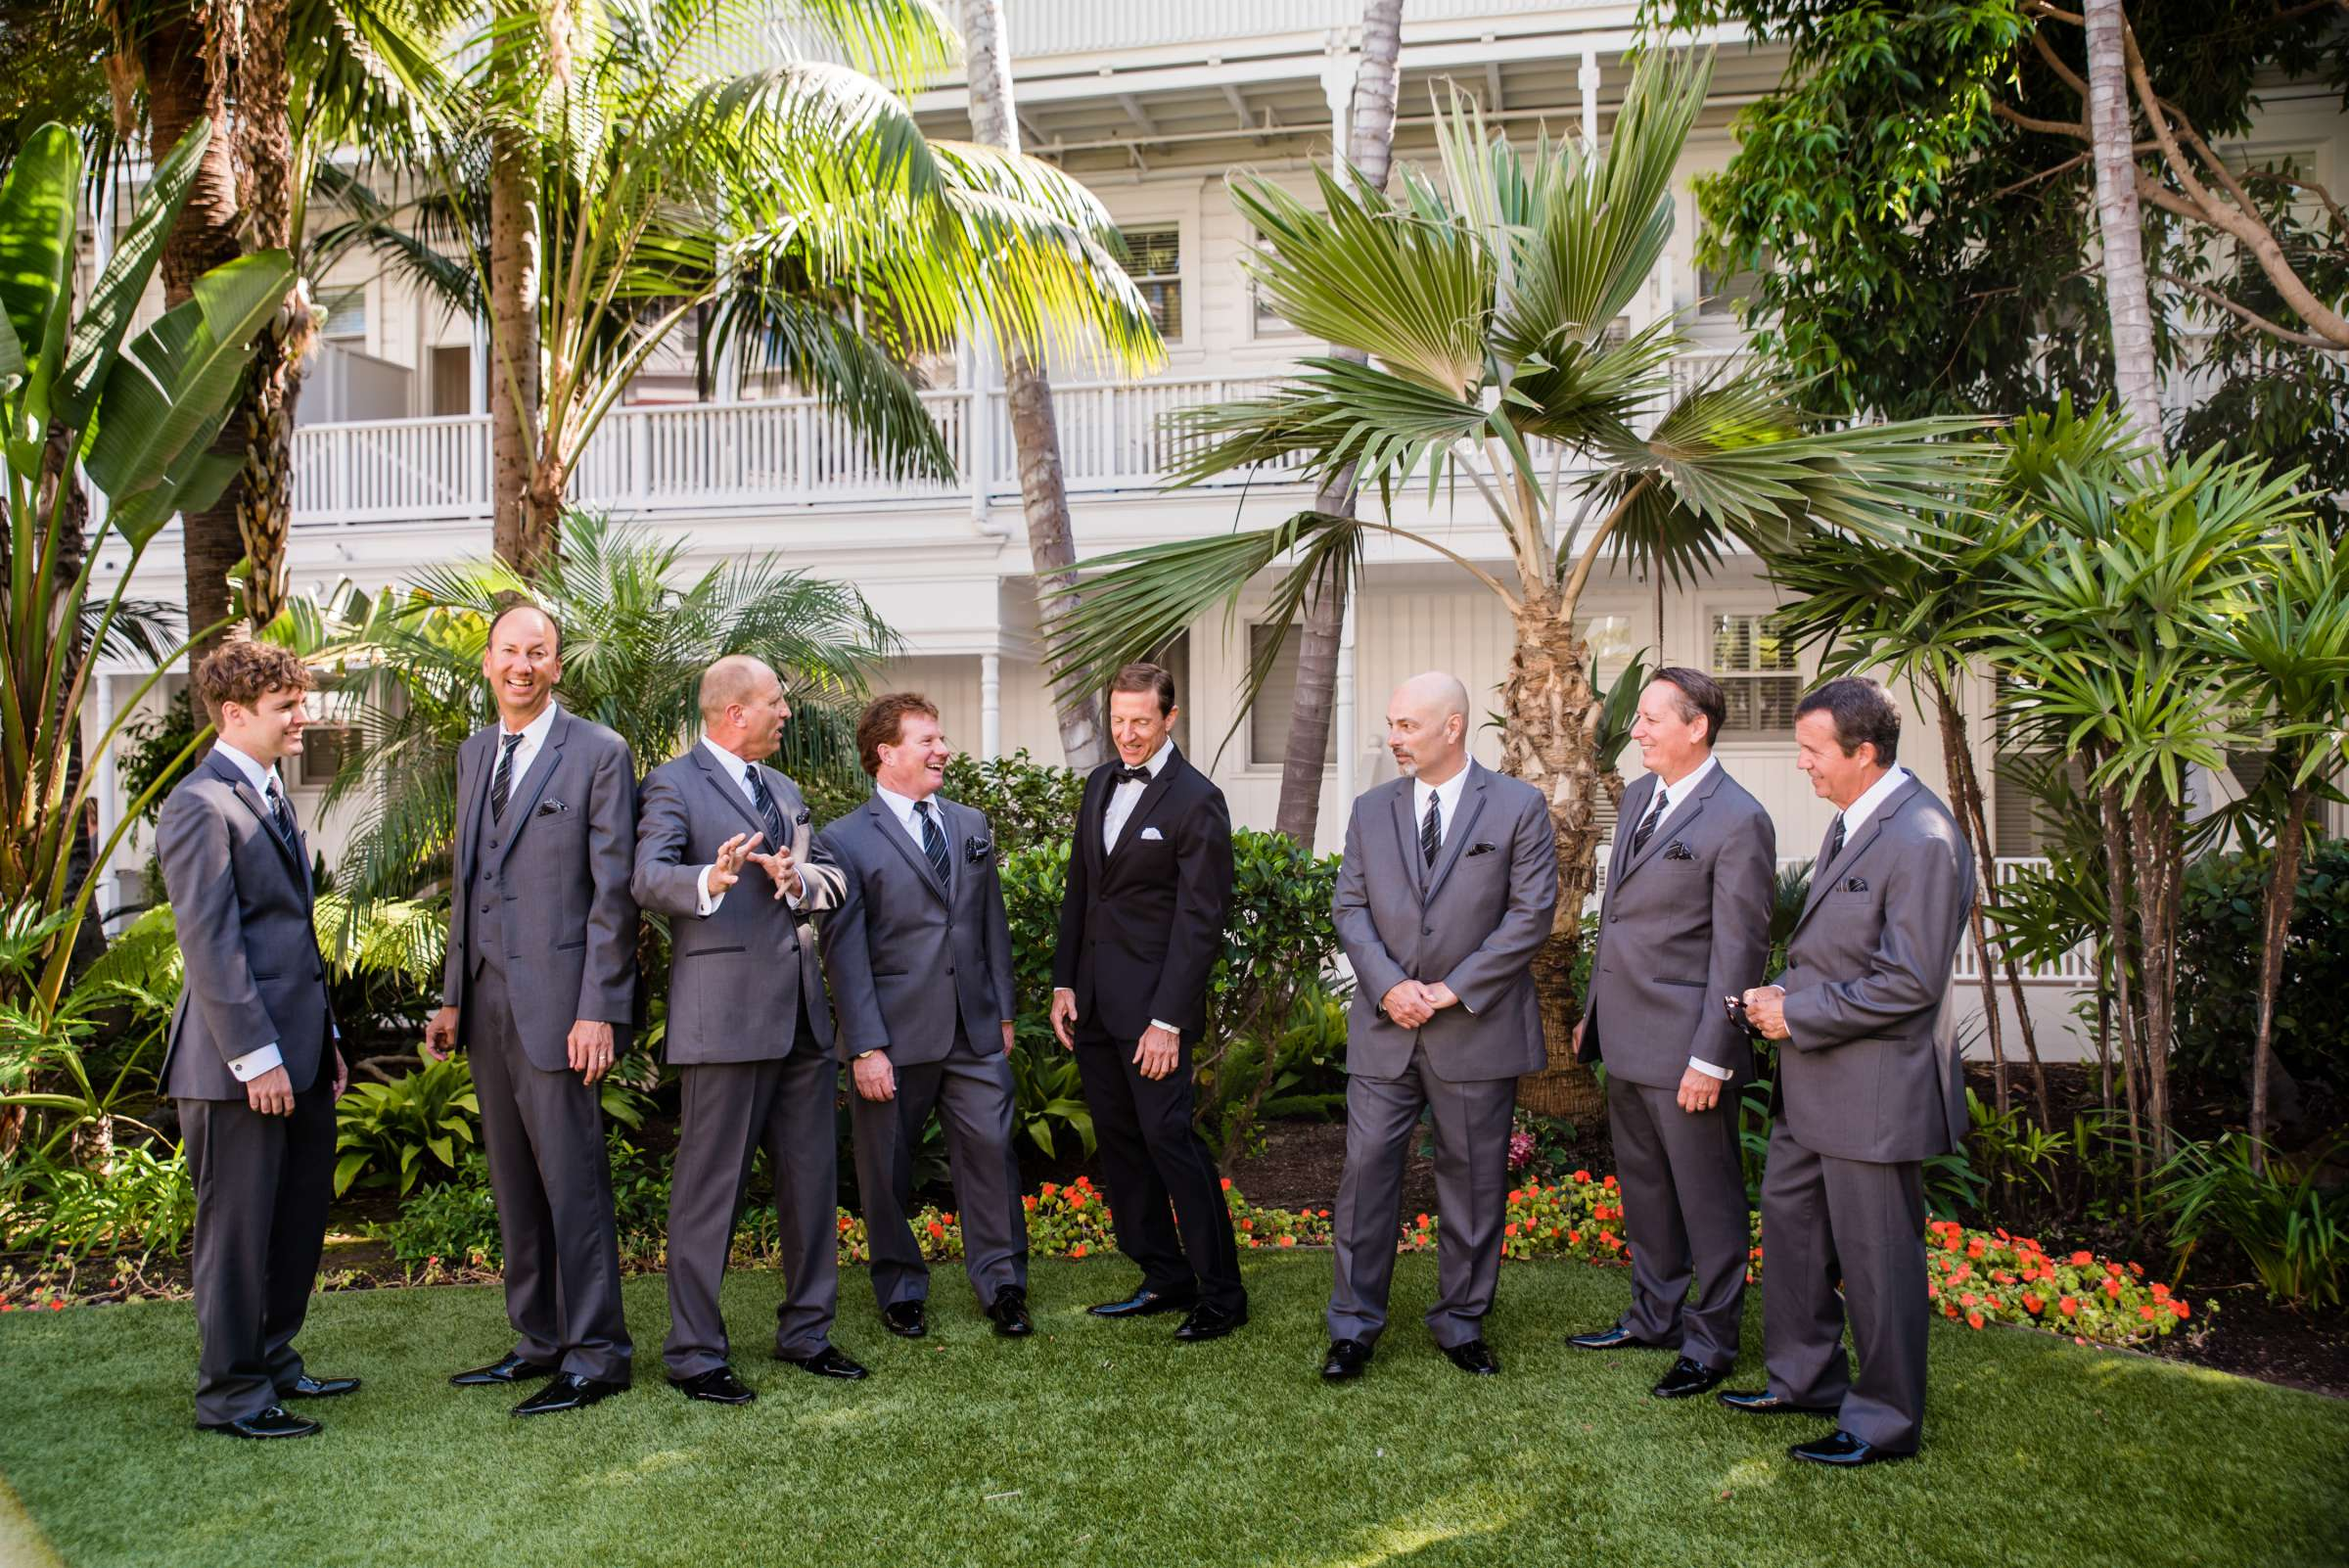 Hotel Del Coronado Wedding coordinated by Creative Affairs Inc, Diane and Paul Wedding Photo #80 by True Photography